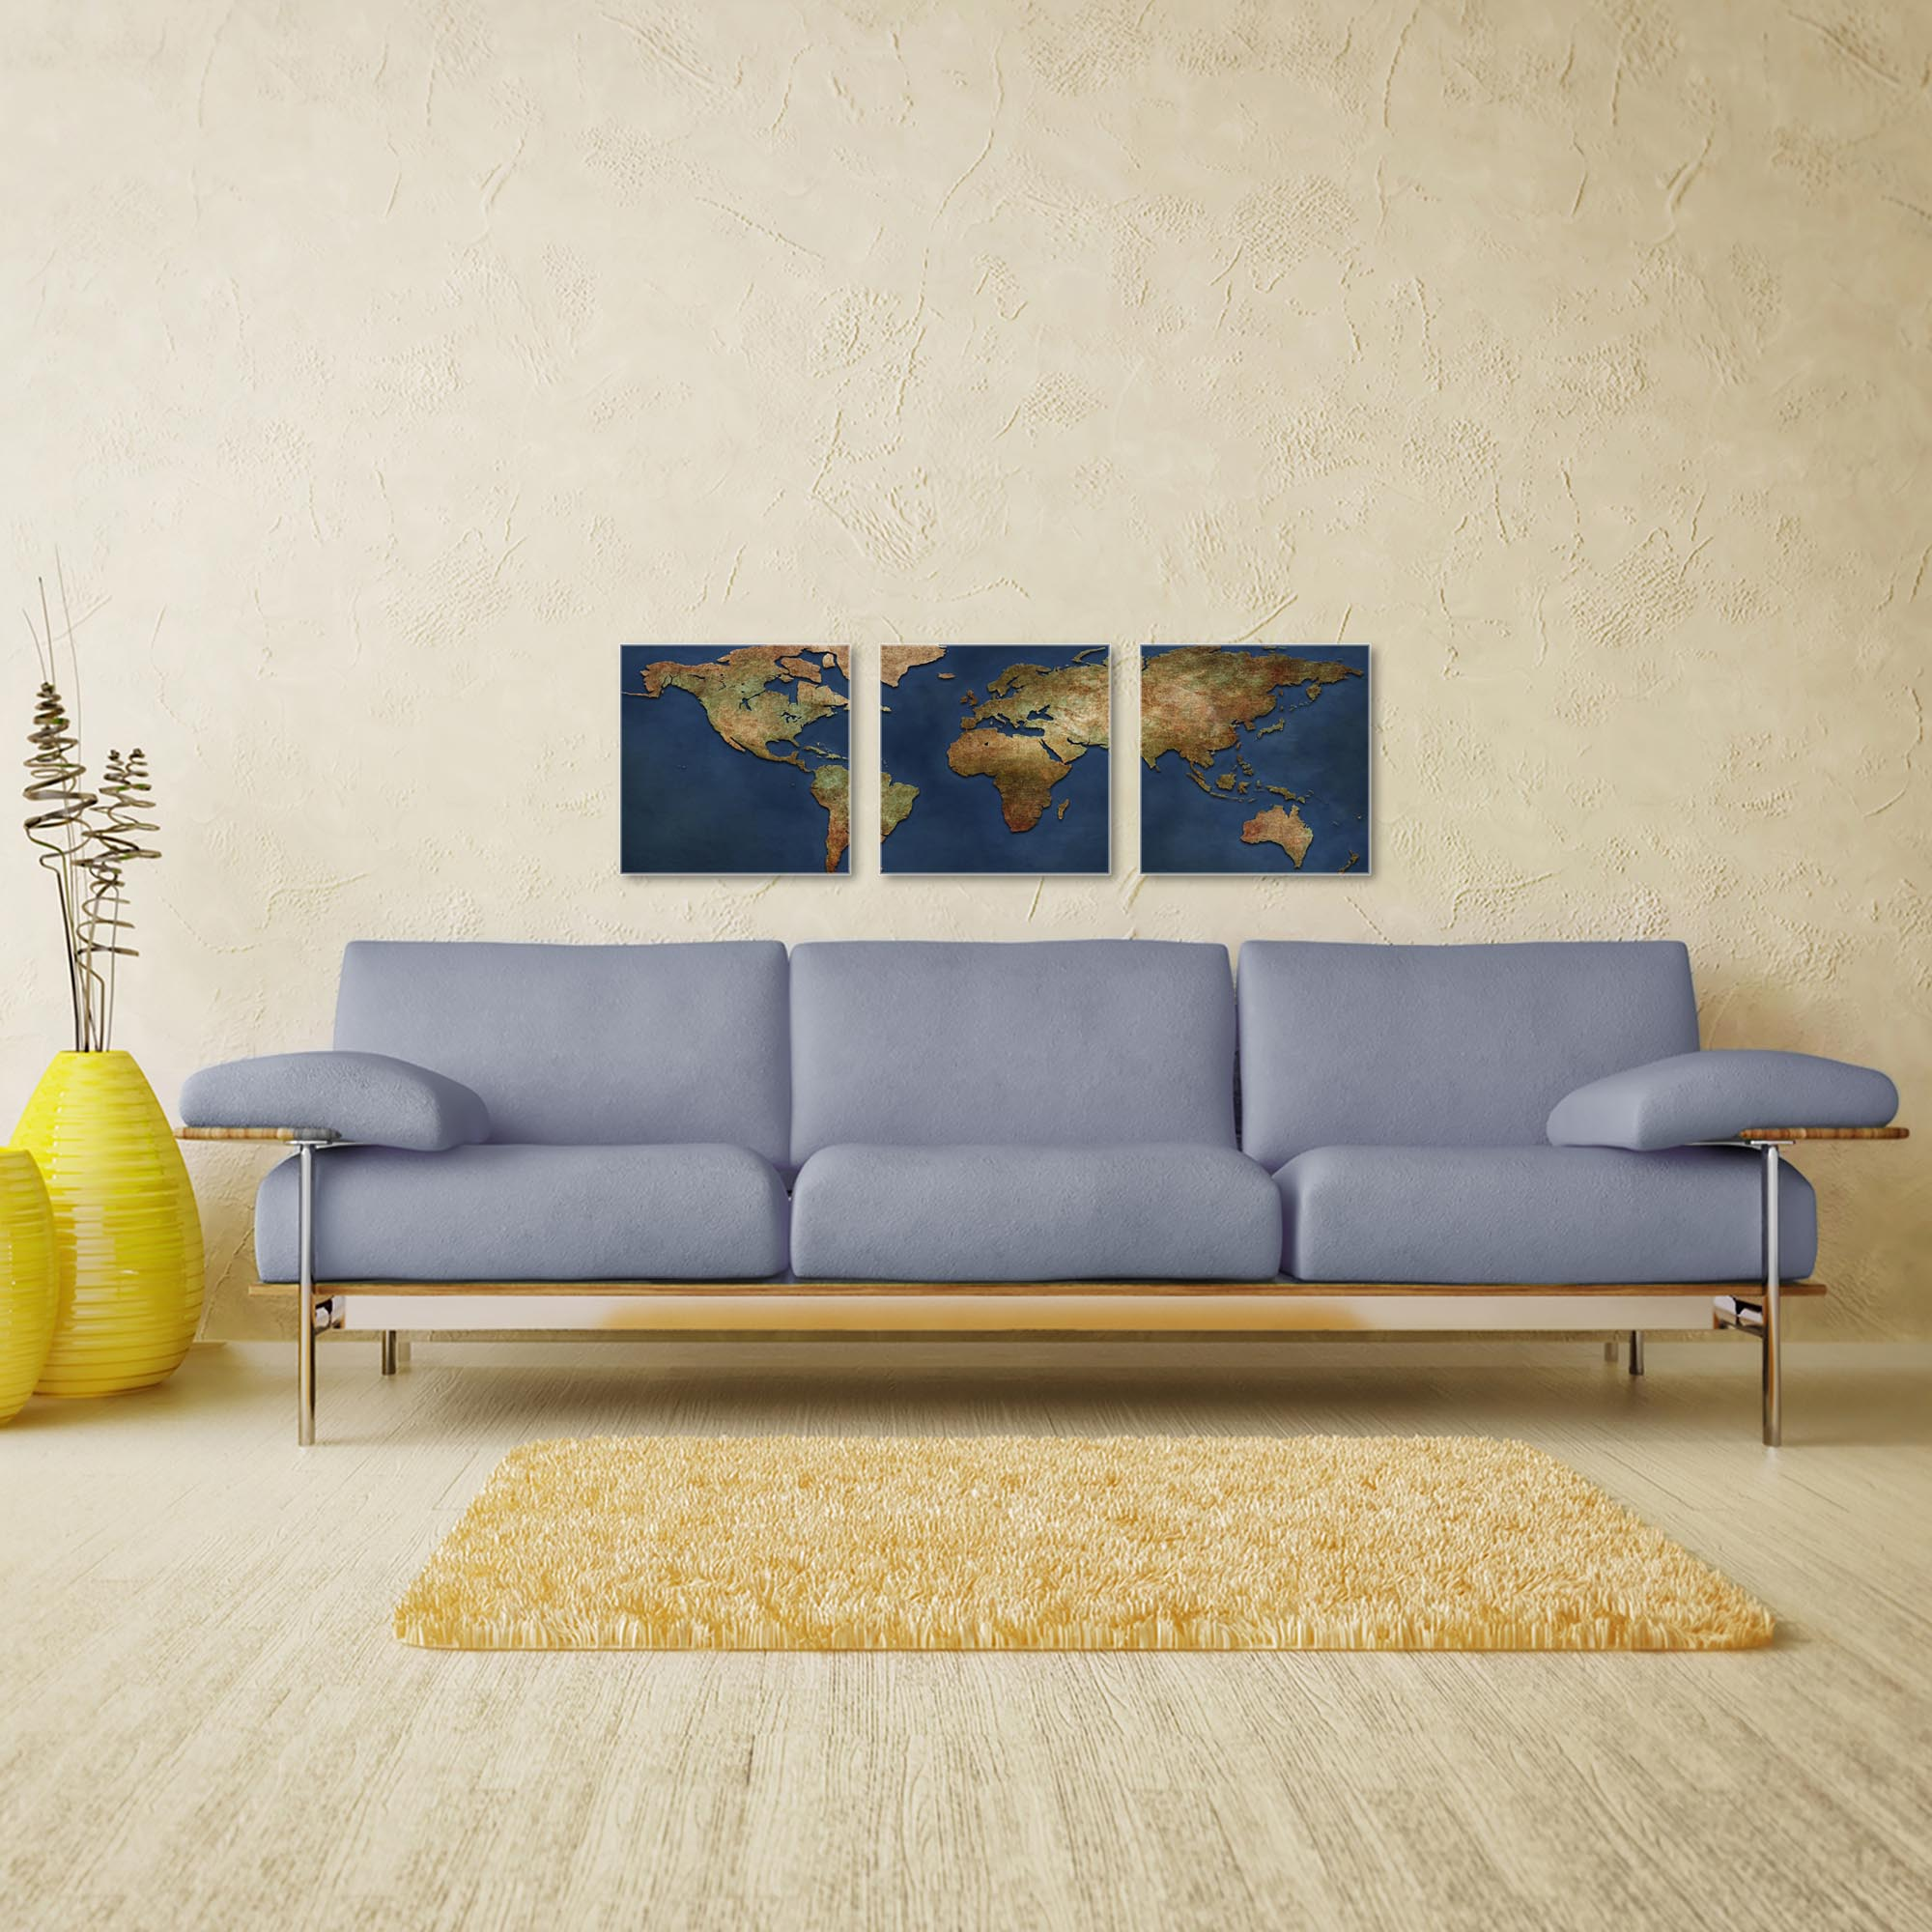 1800s World Map Triptych 38x12in. Metal or Acrylic Colonial Decor - Image 3